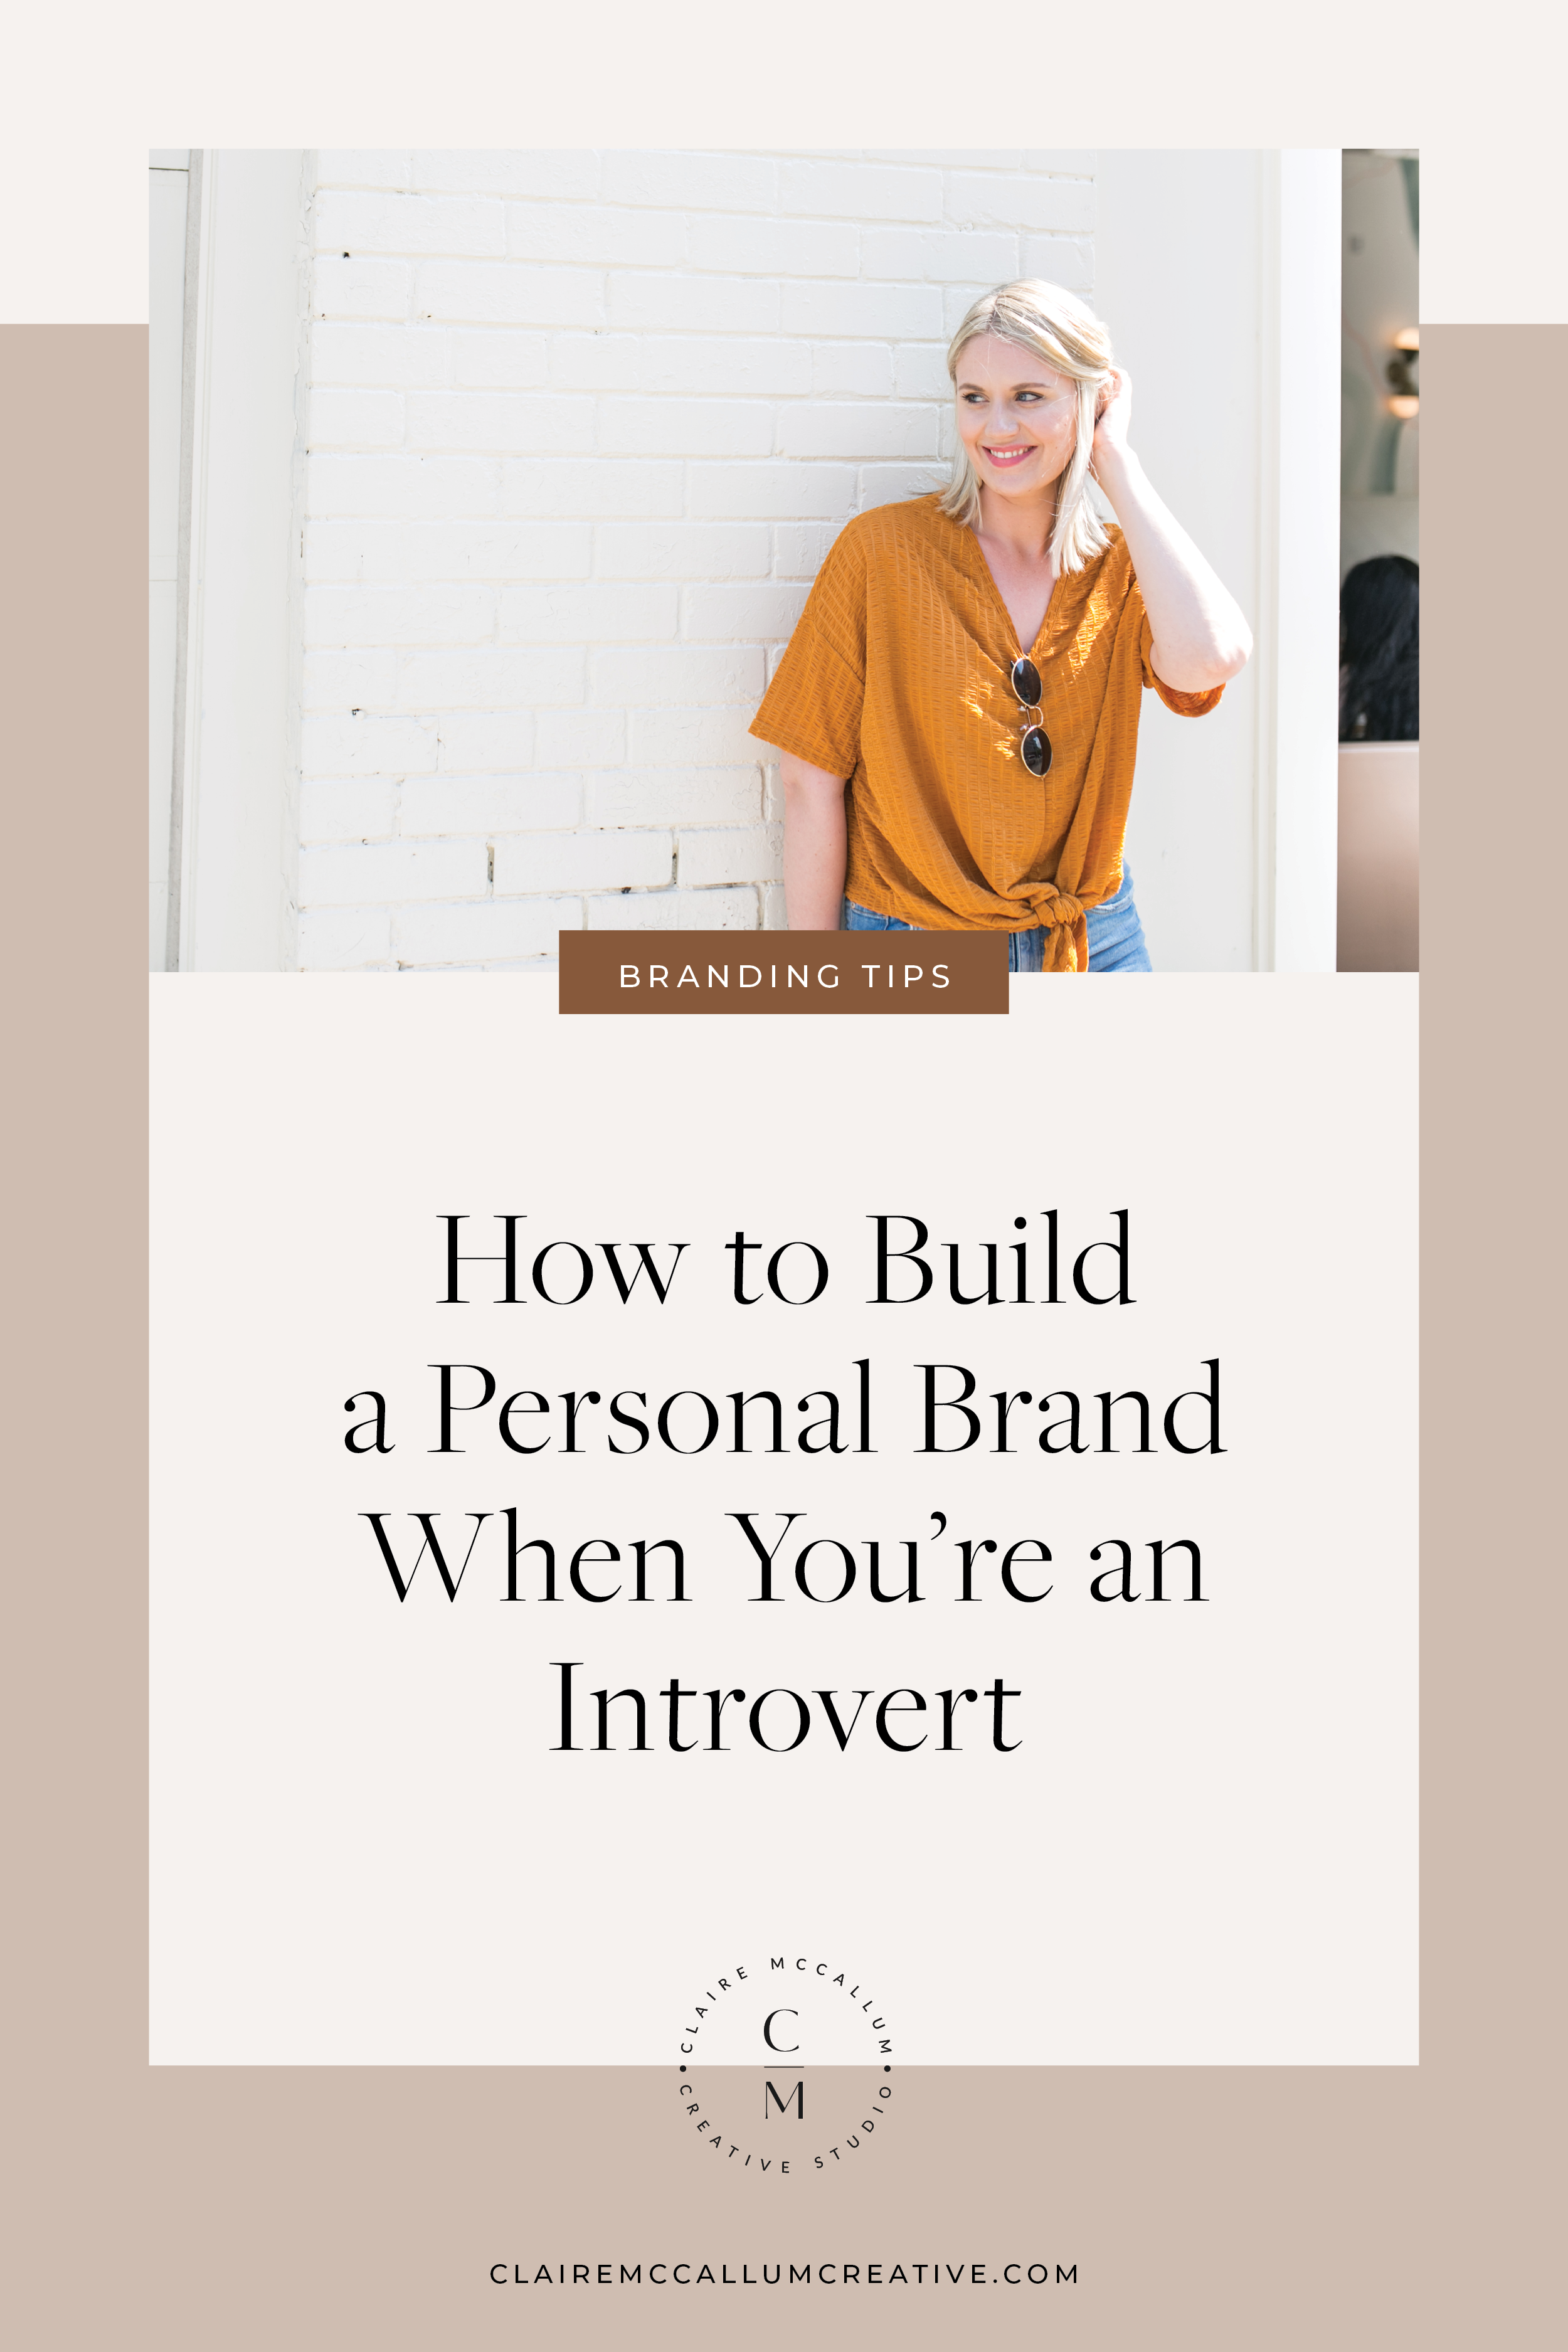 How To Build A Personal Brand When You're an Introvert_Claire McCallum Creative Studio.png